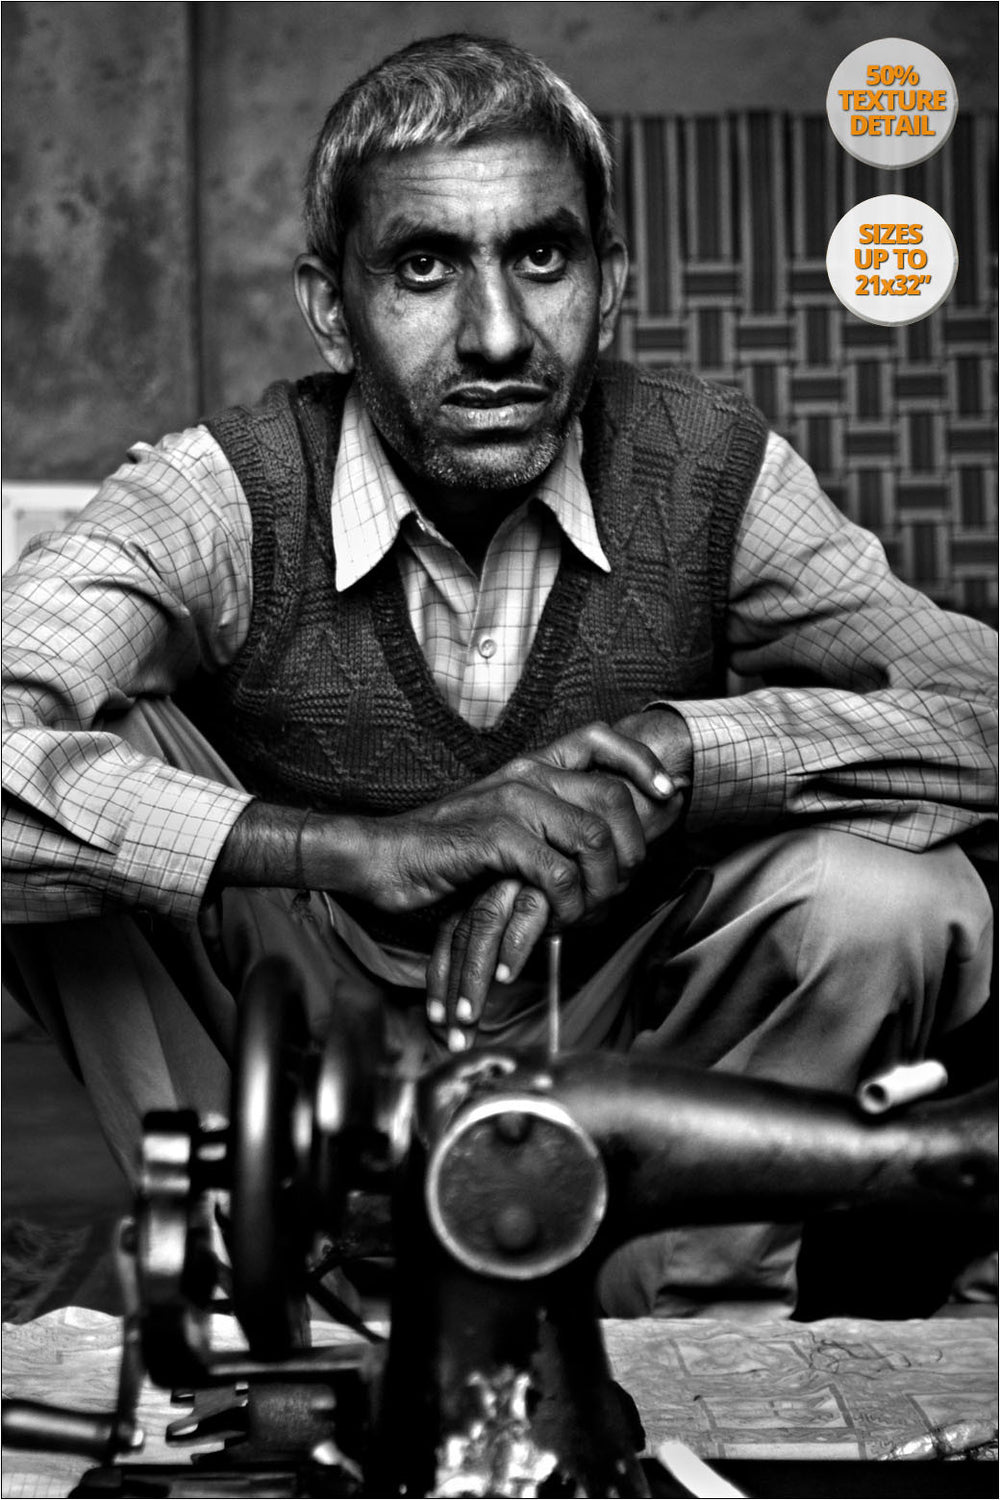 Tailor with his sewing machine, Chandigarh, India. | View of the Print at 50% magnification detail.